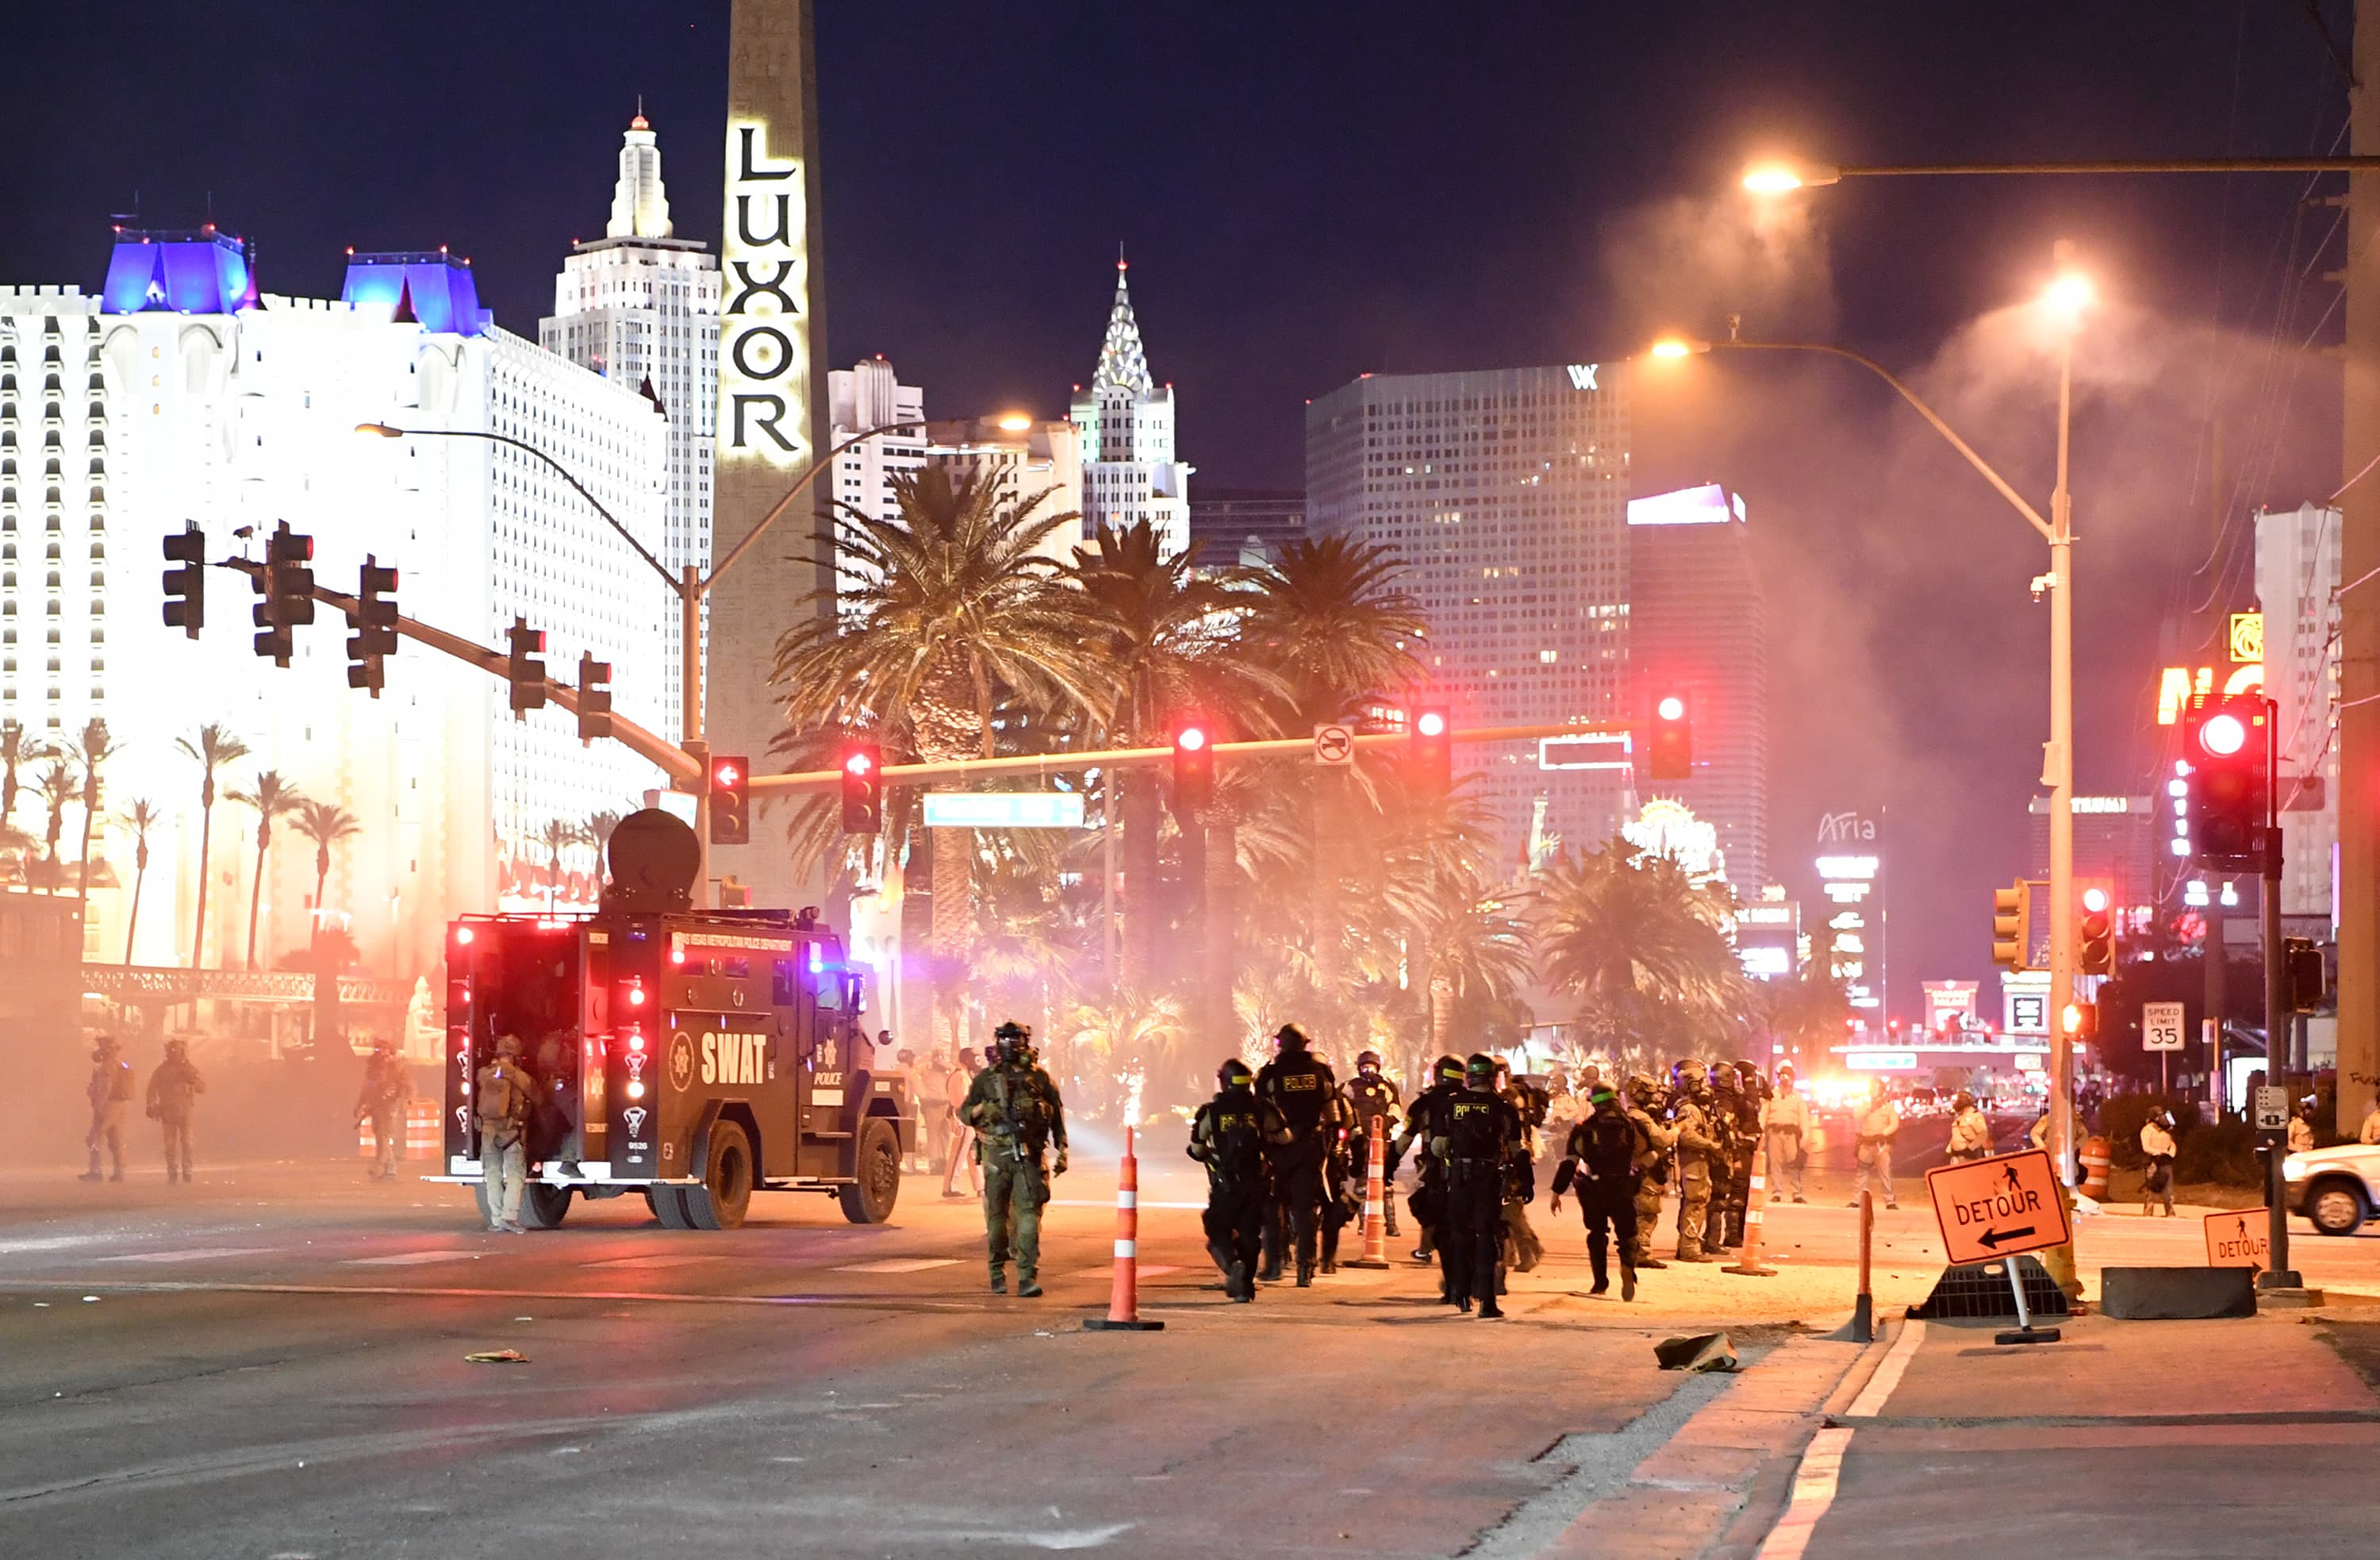 Protests may derail an expected strong reopening for Las Vegas casinos